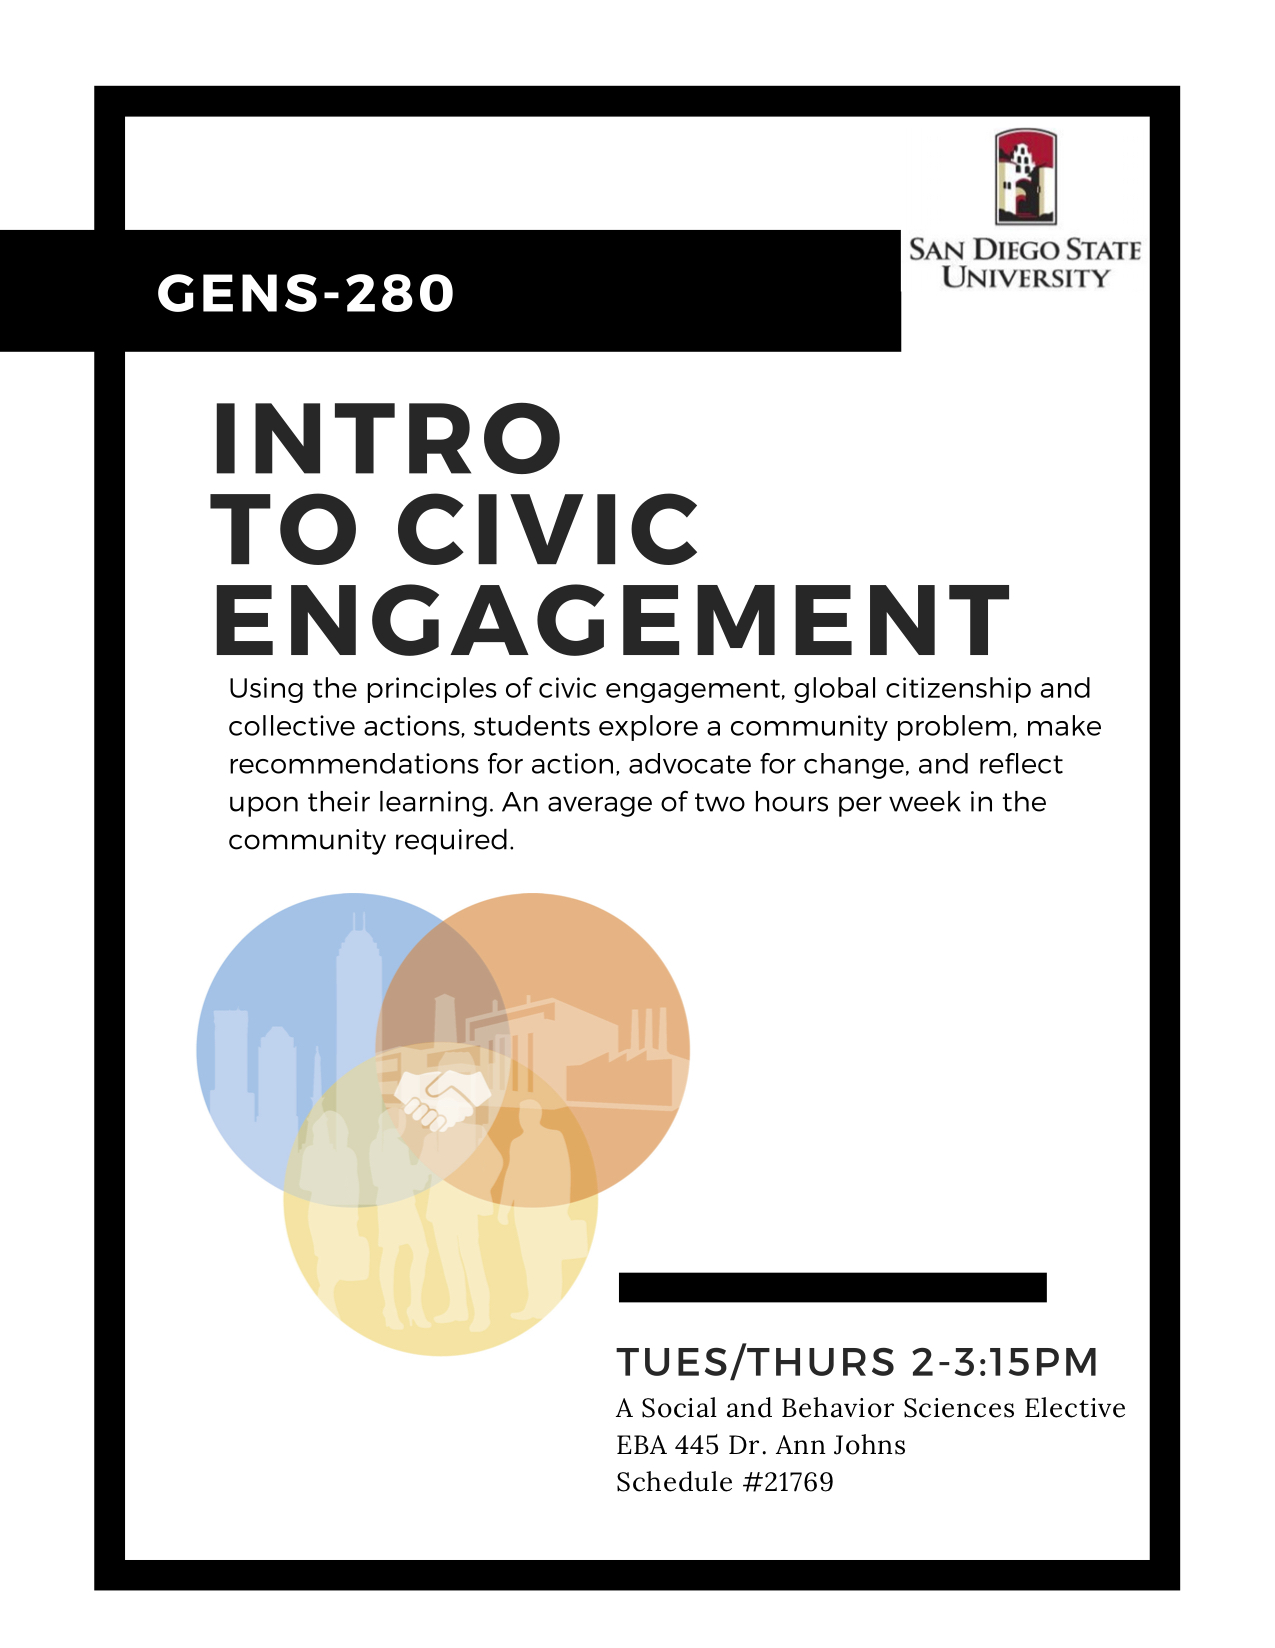 GENS 280 Intro to Civic Engagement flyer